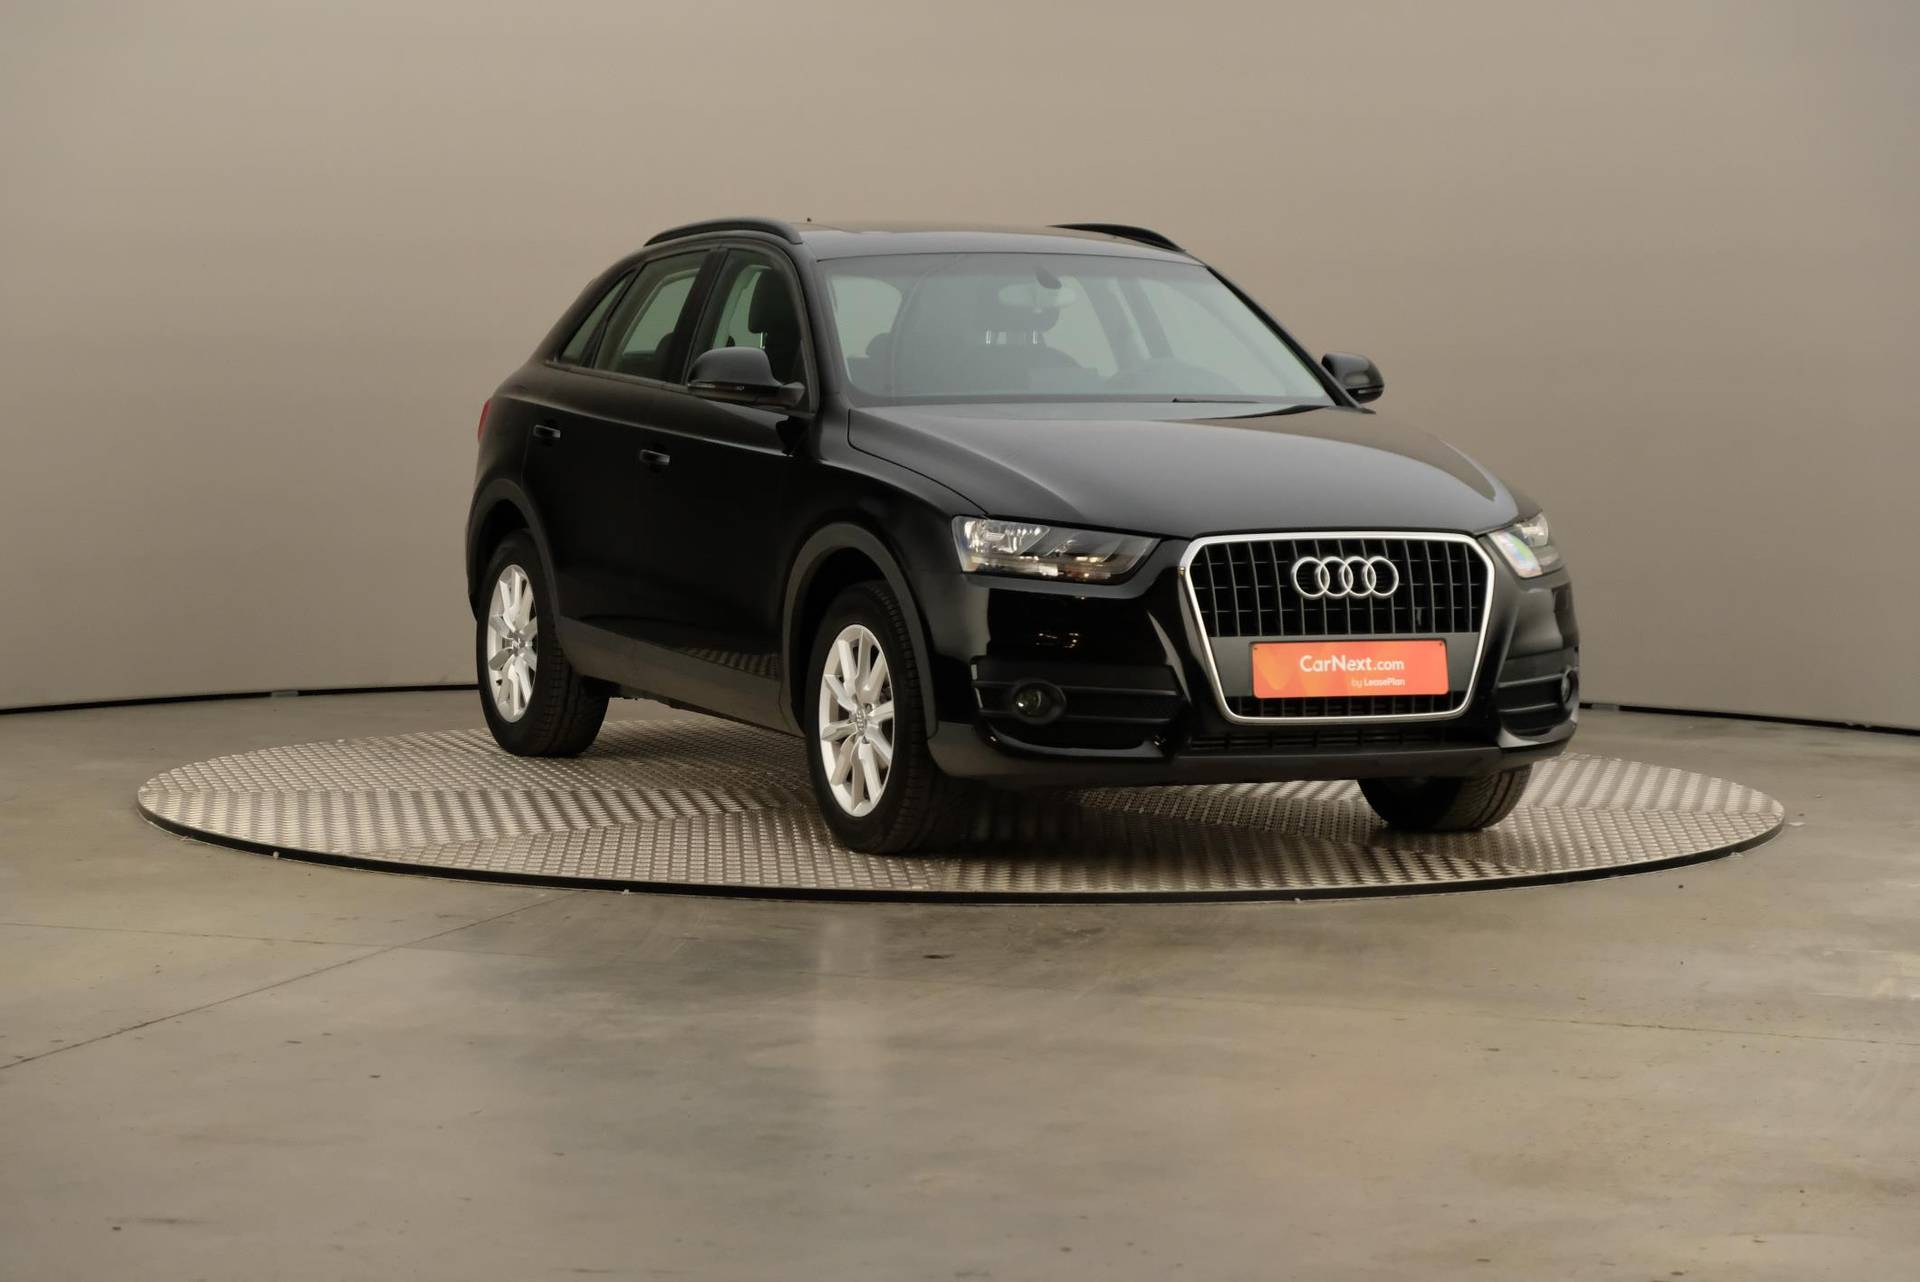 Audi Q3 2.0 TDI Adventure Plus S&S PANO MP3 BT GPS, 360-image29